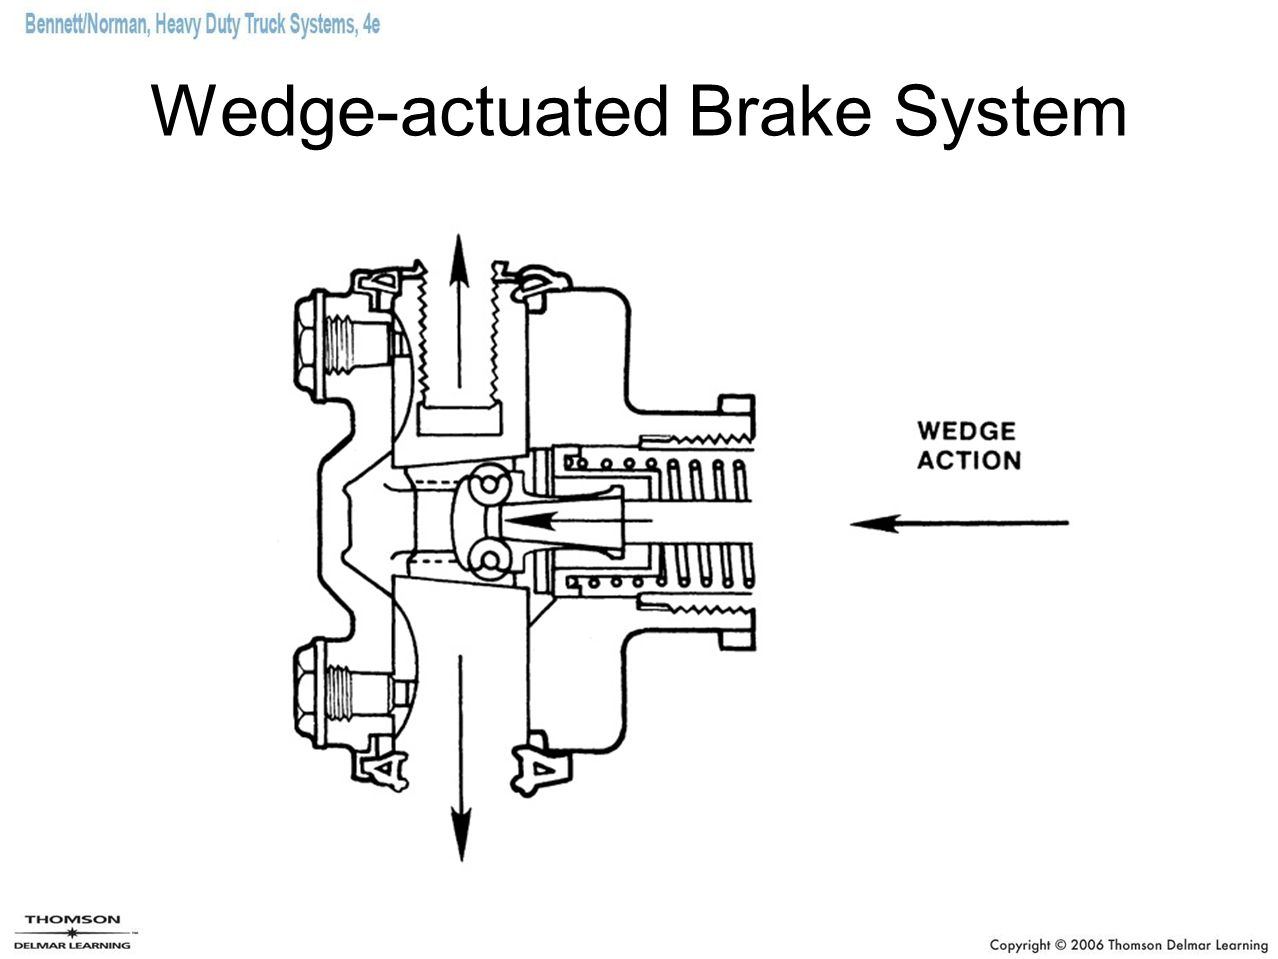 Chapter 28 Truck Brake Systems Ppt Video Online Download Air Brakes Schematic 33 Wedge Actuated System